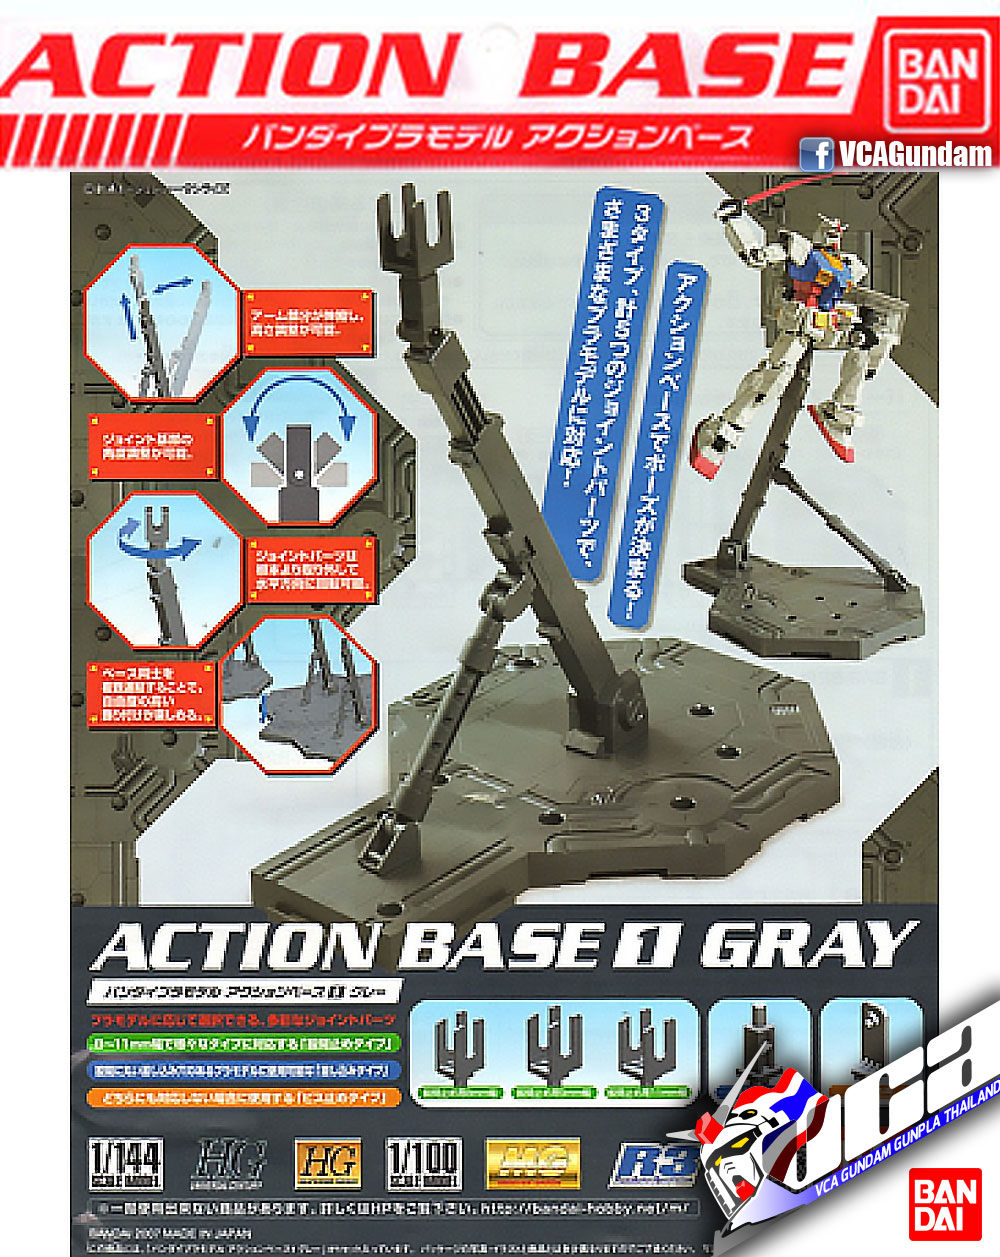 Action Base 1 Grey สีเทา